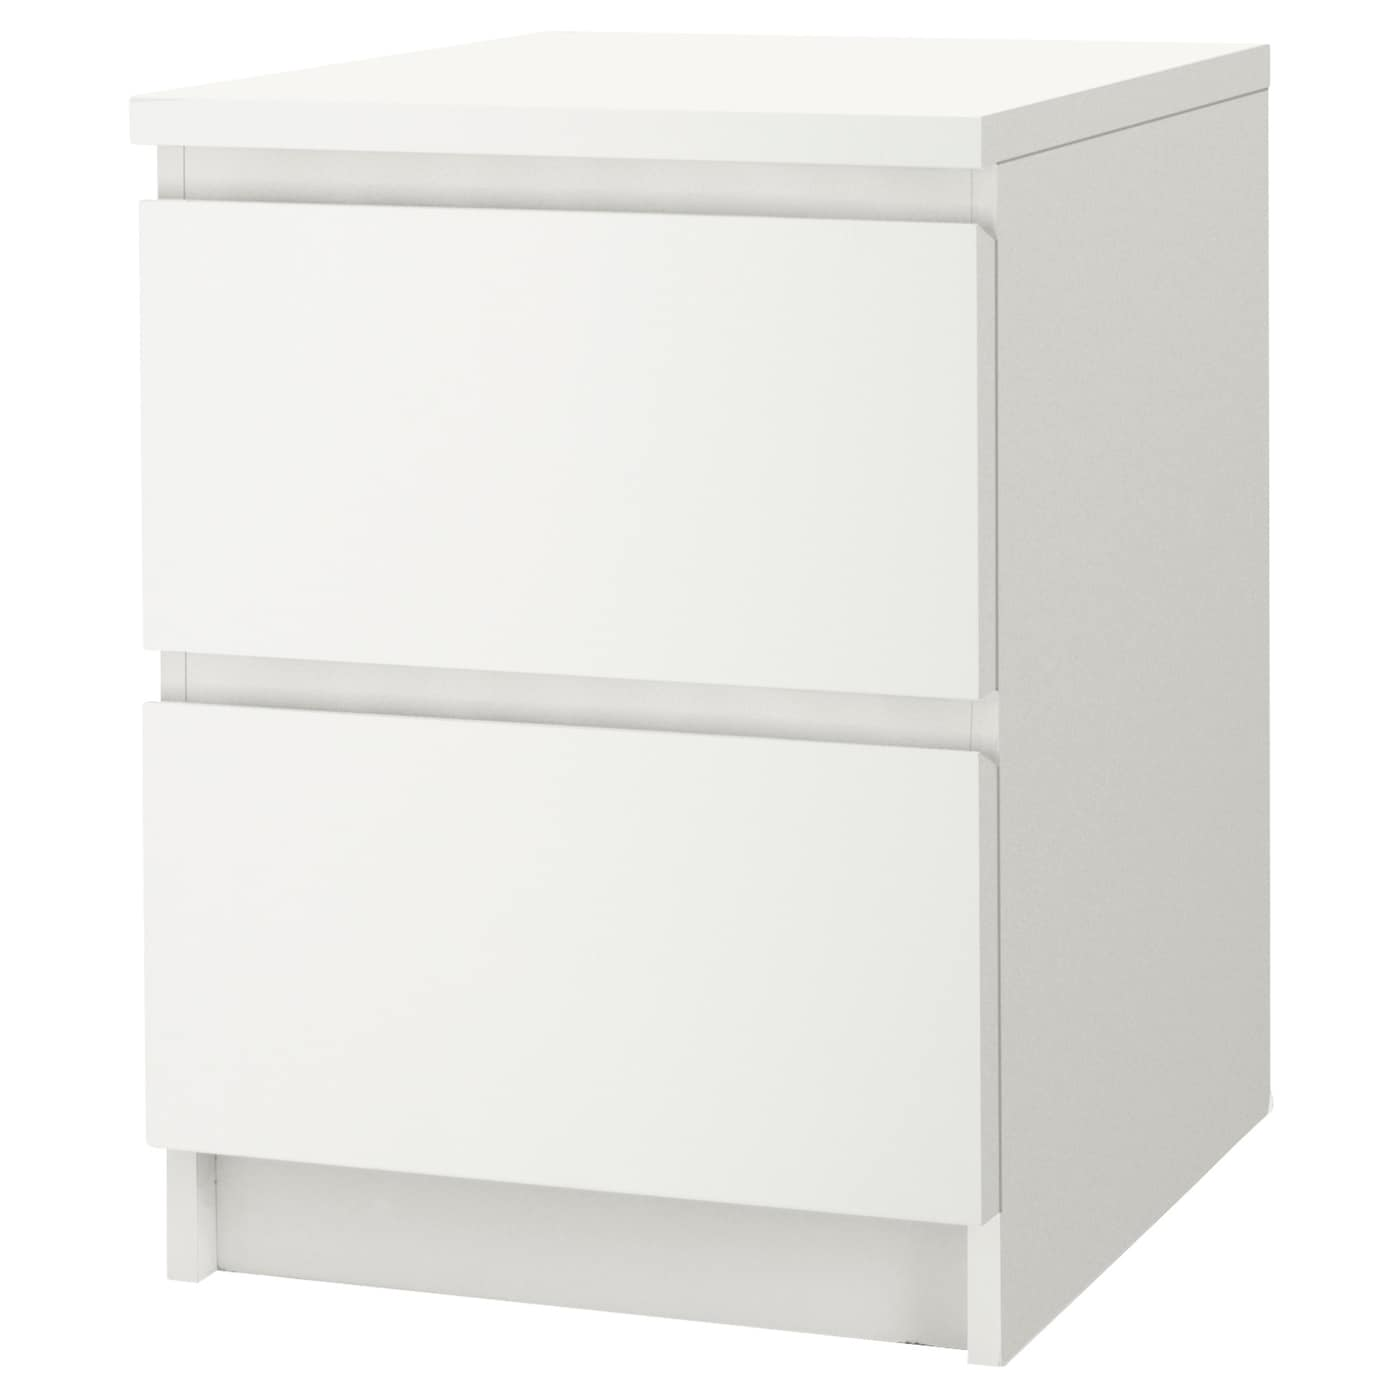 Used Bedside Tables Fair Malm Chest Of 2 Drawers White 40X55 Cm  Ikea Design Ideas